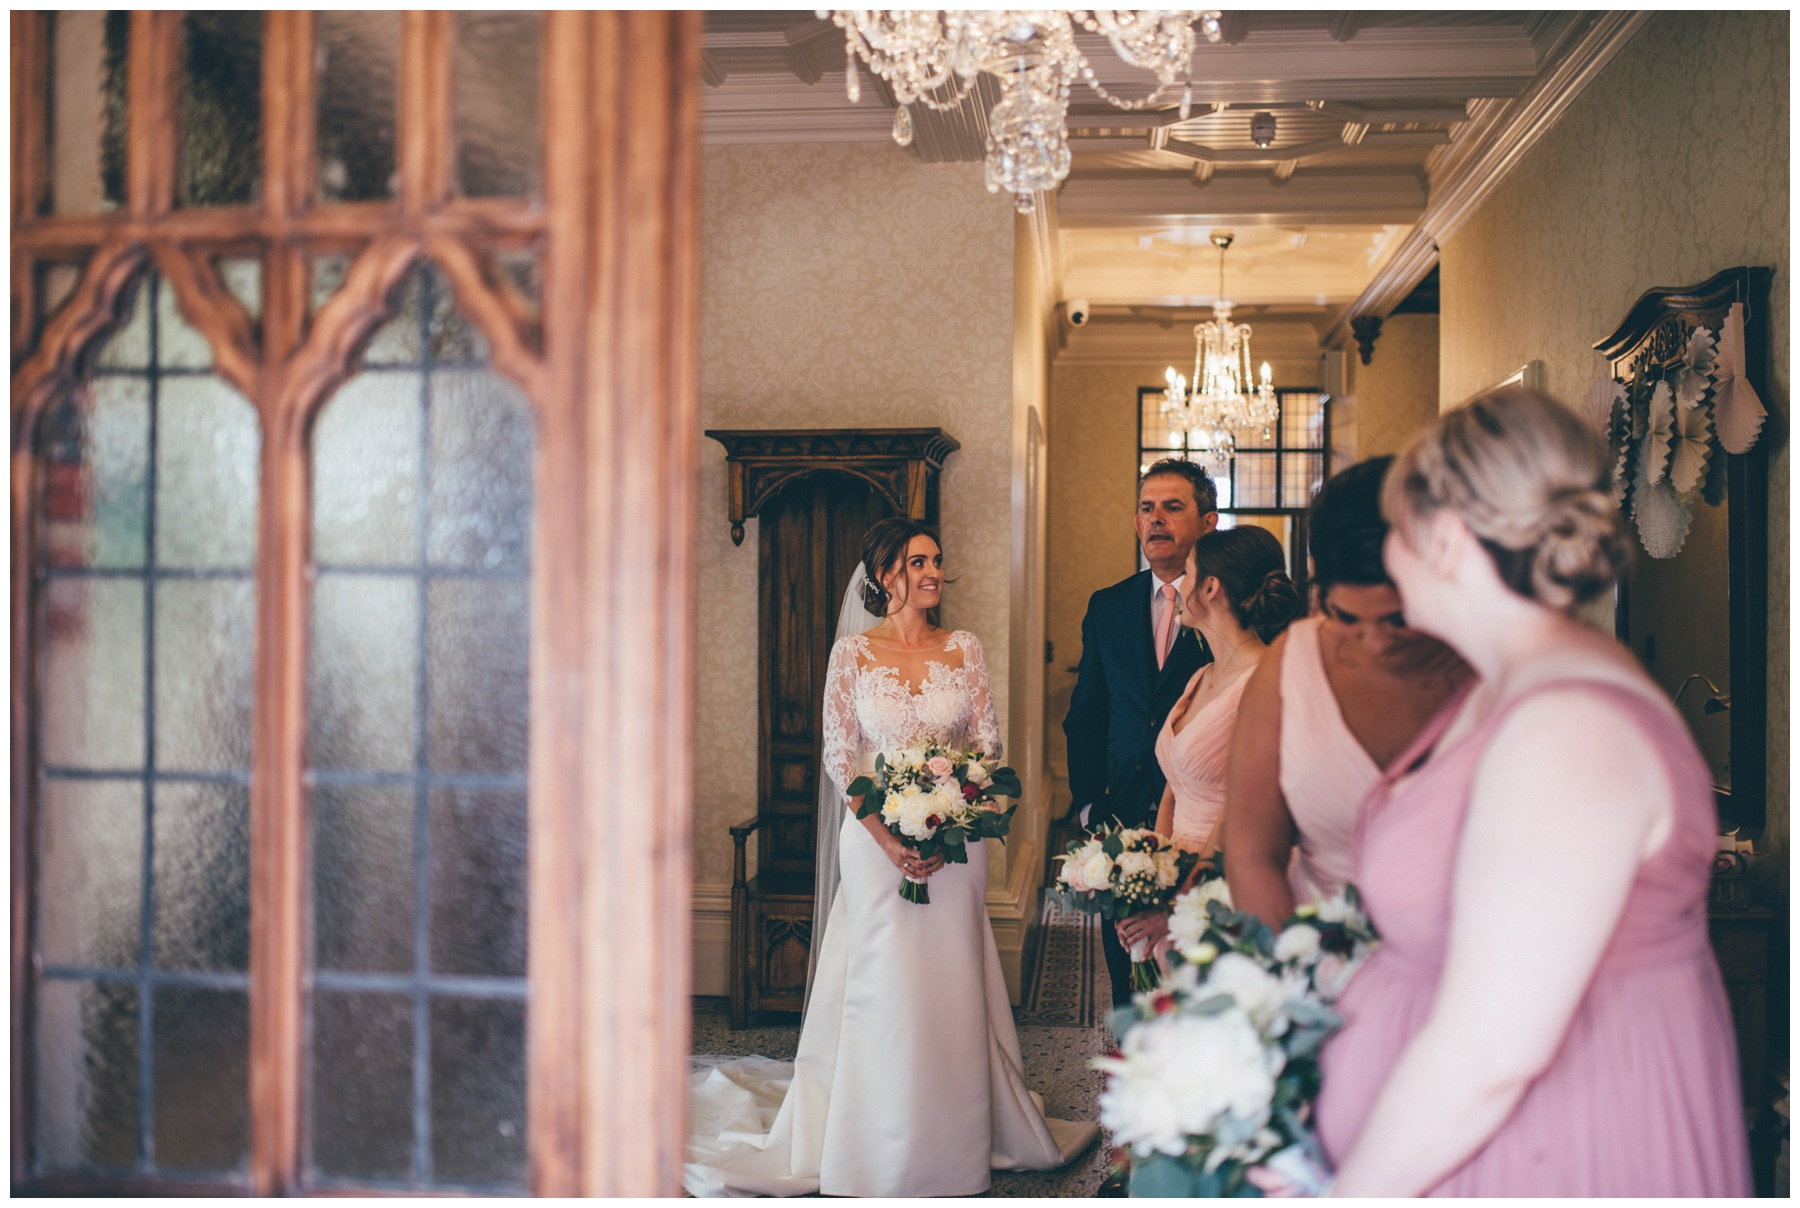 The bridal party waiting to walk down the aisle at Tilstone House.